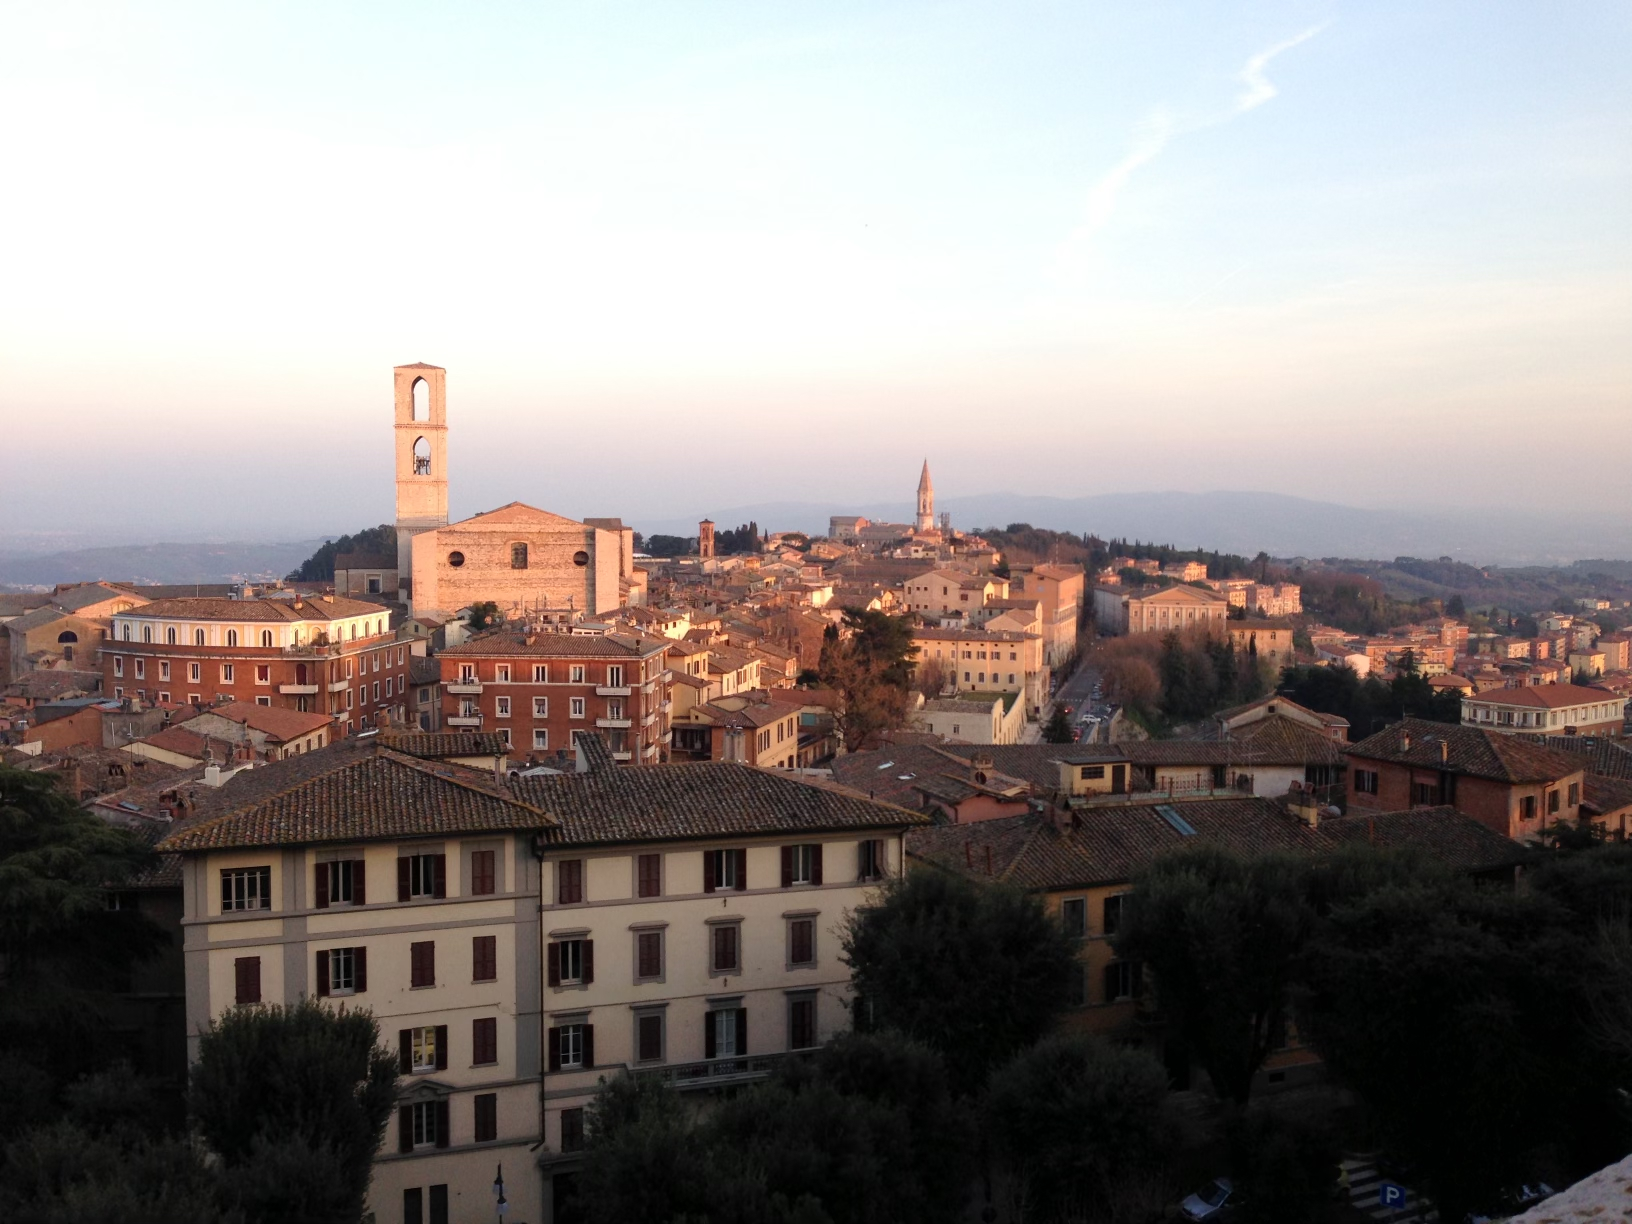 Sunset view of a town in Umbria, Italy